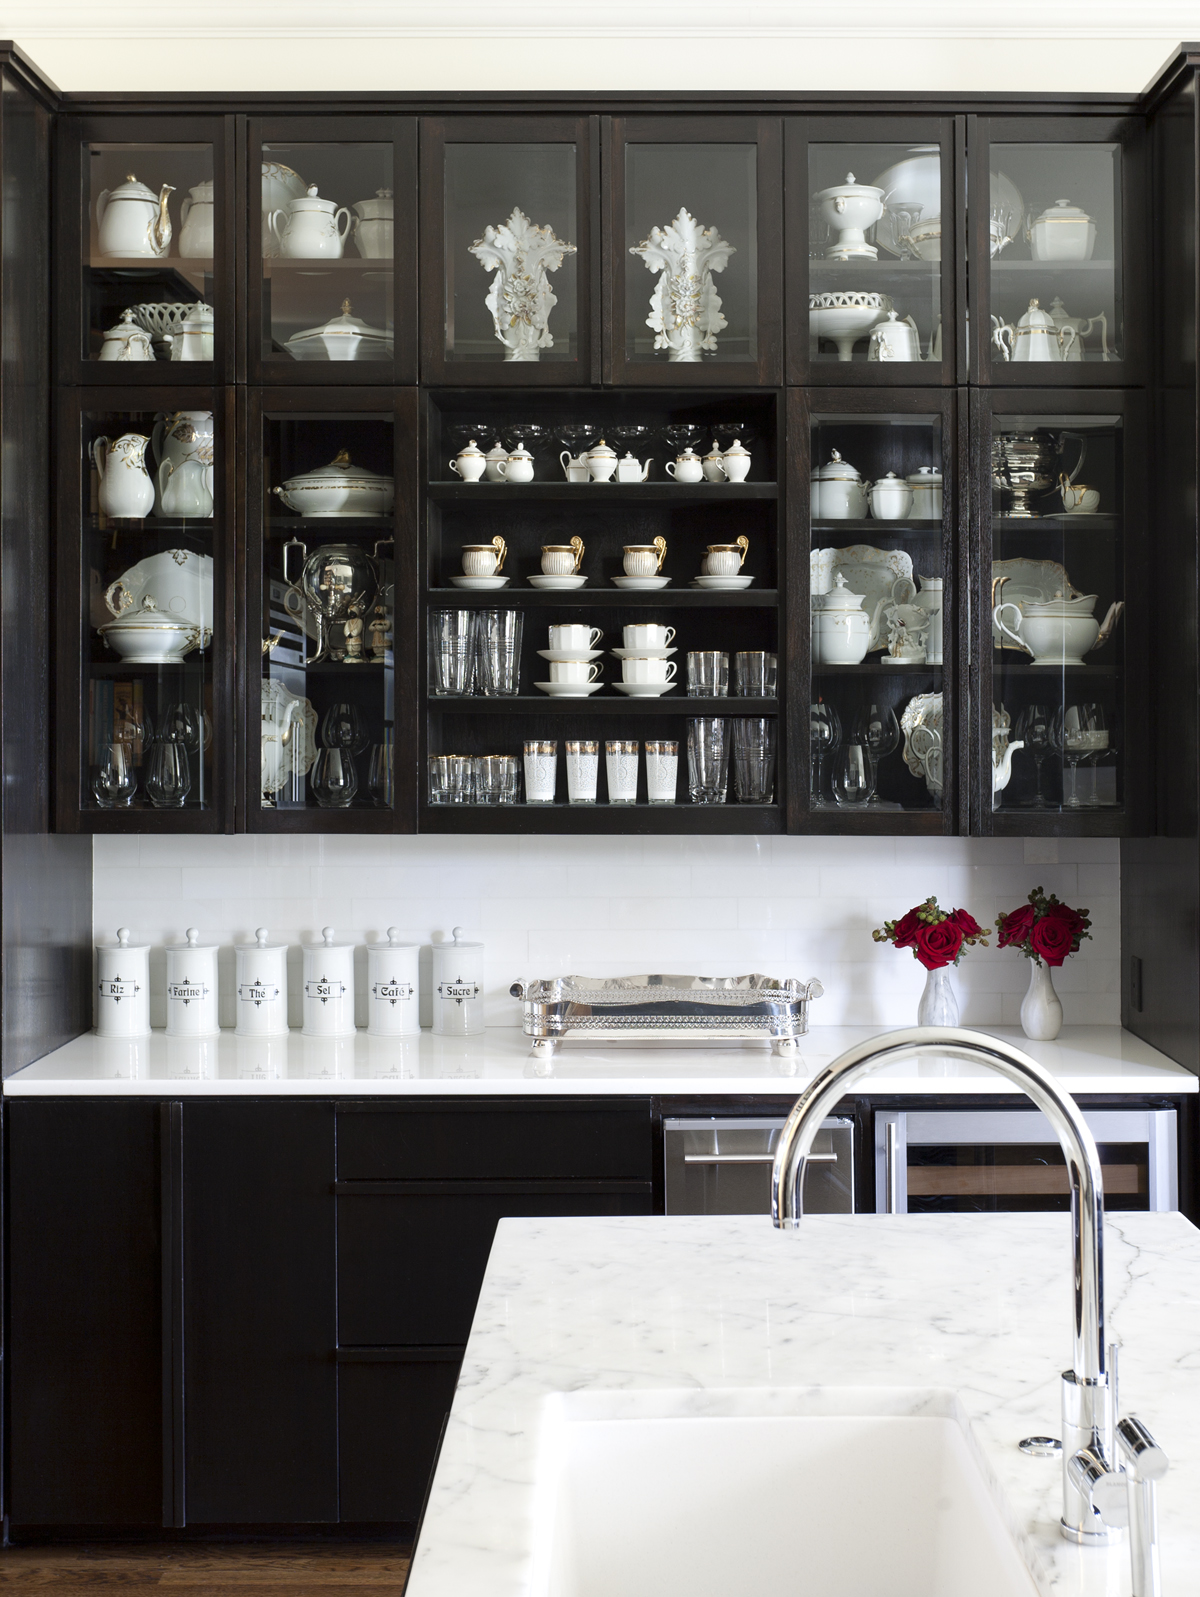 Bye bye white hello dark kitchen cabinets nbaynadamas for Black kitchen cabinets with white marble countertops